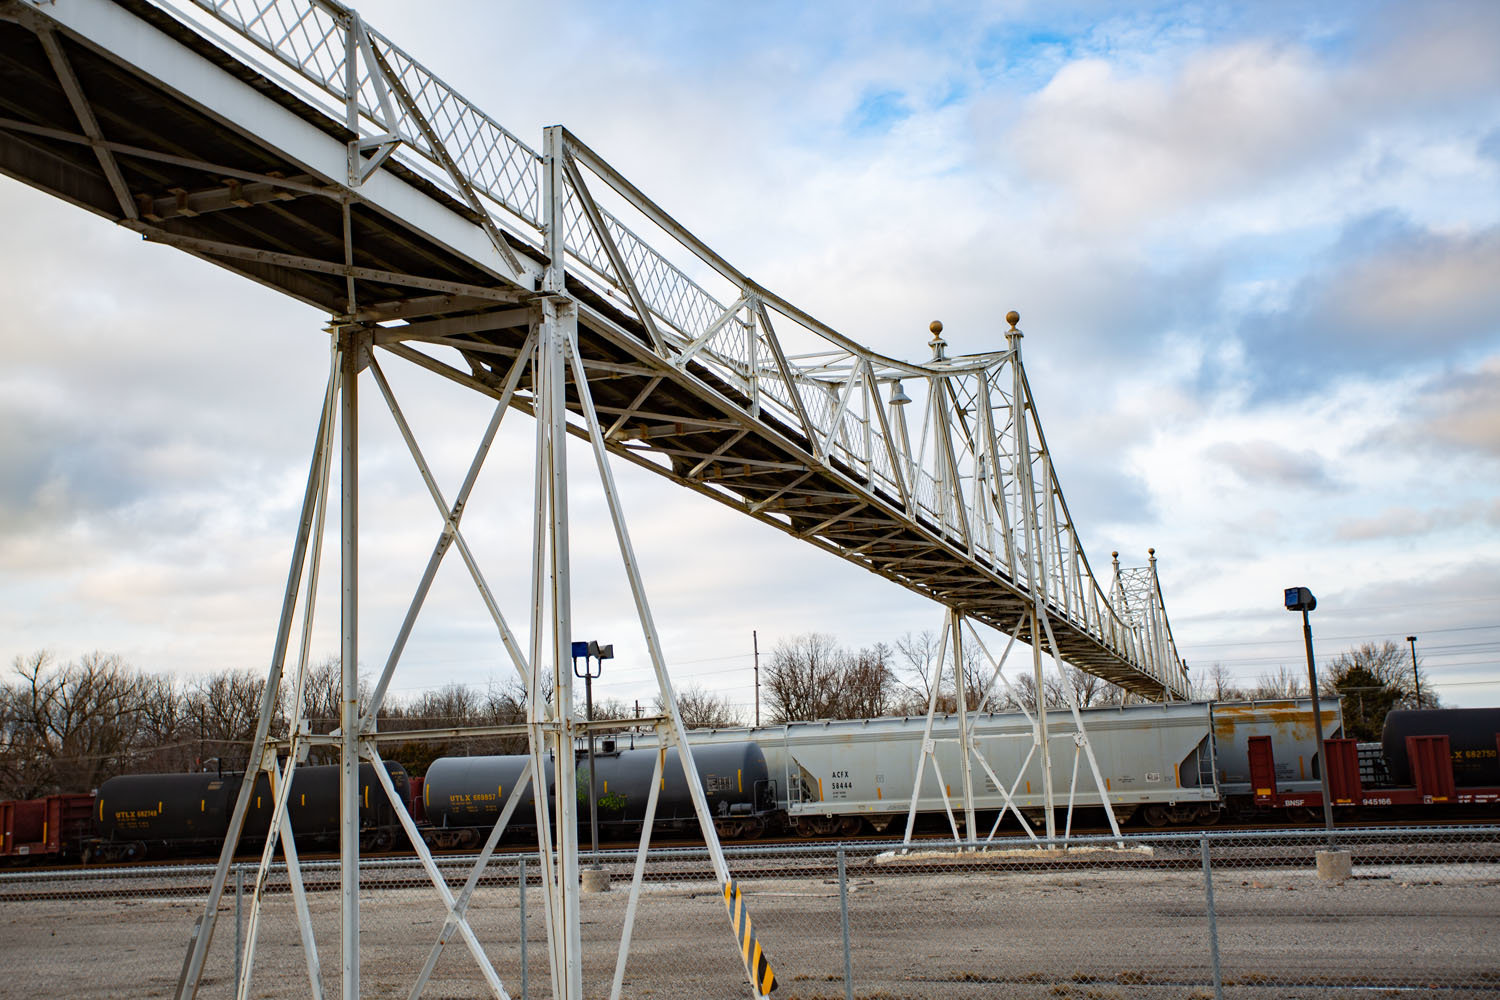 The Jefferson Avenue Footbridge rehabilitation project is slated for an open-bid process this spring.